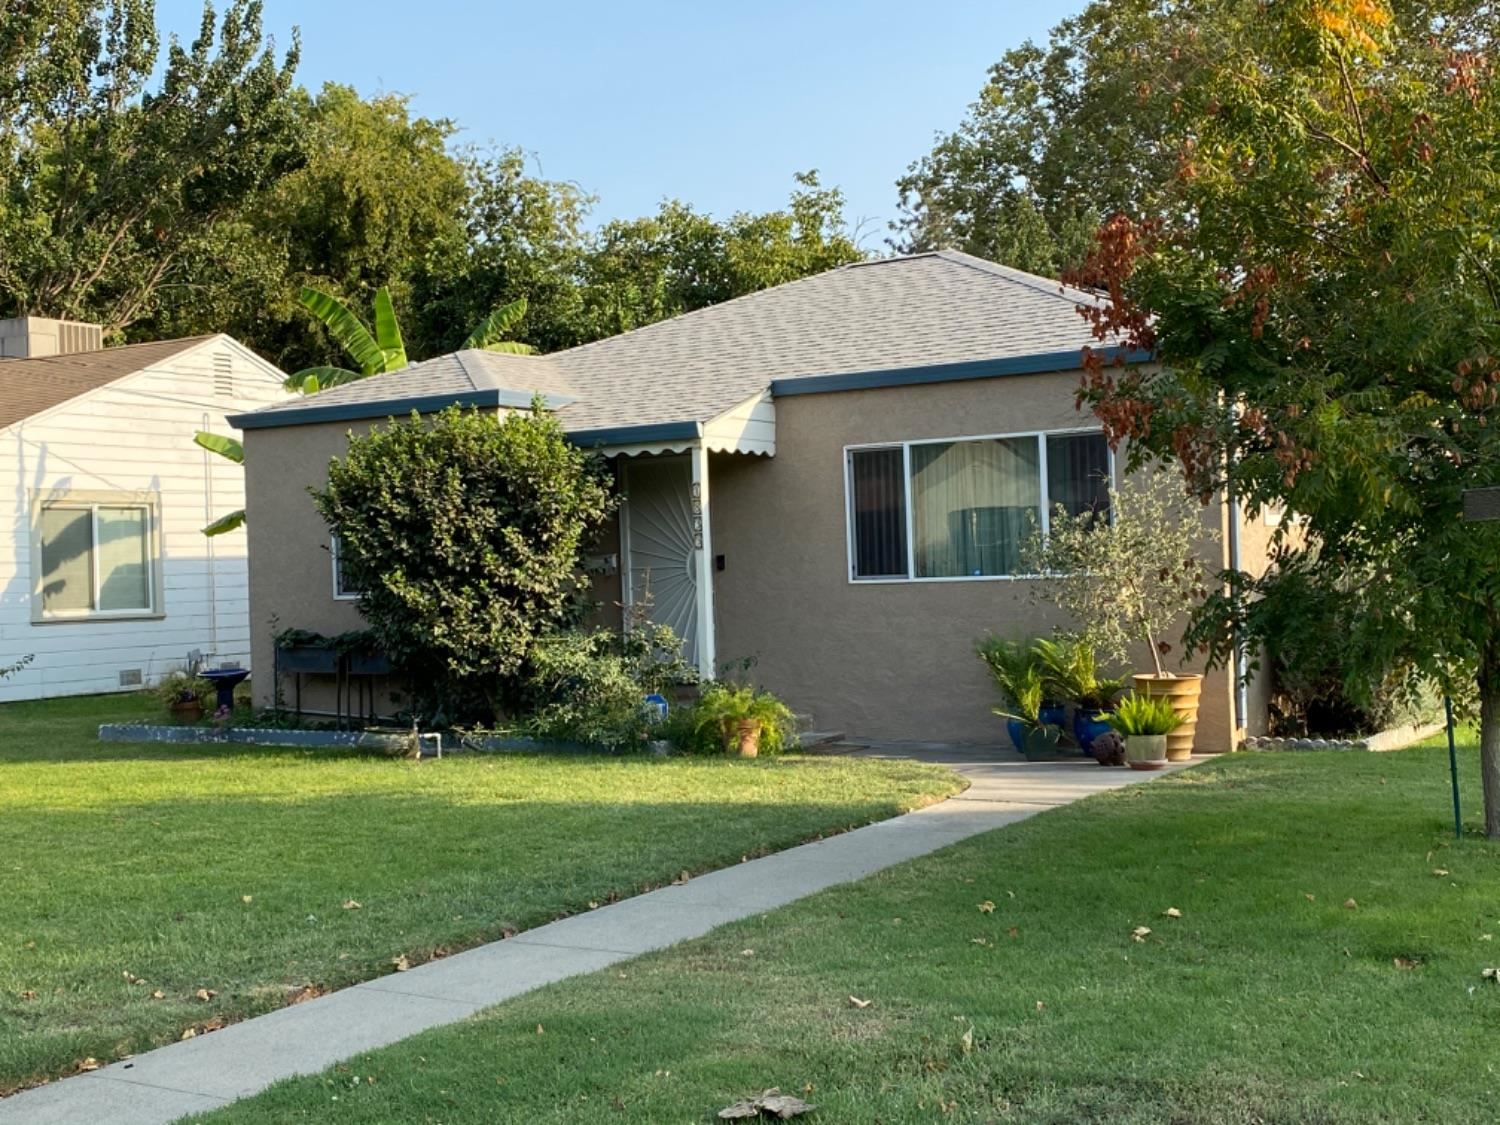 Photo of 1833 Willow Avenue, West Sacramento, CA 95691 (MLS # 20062139)